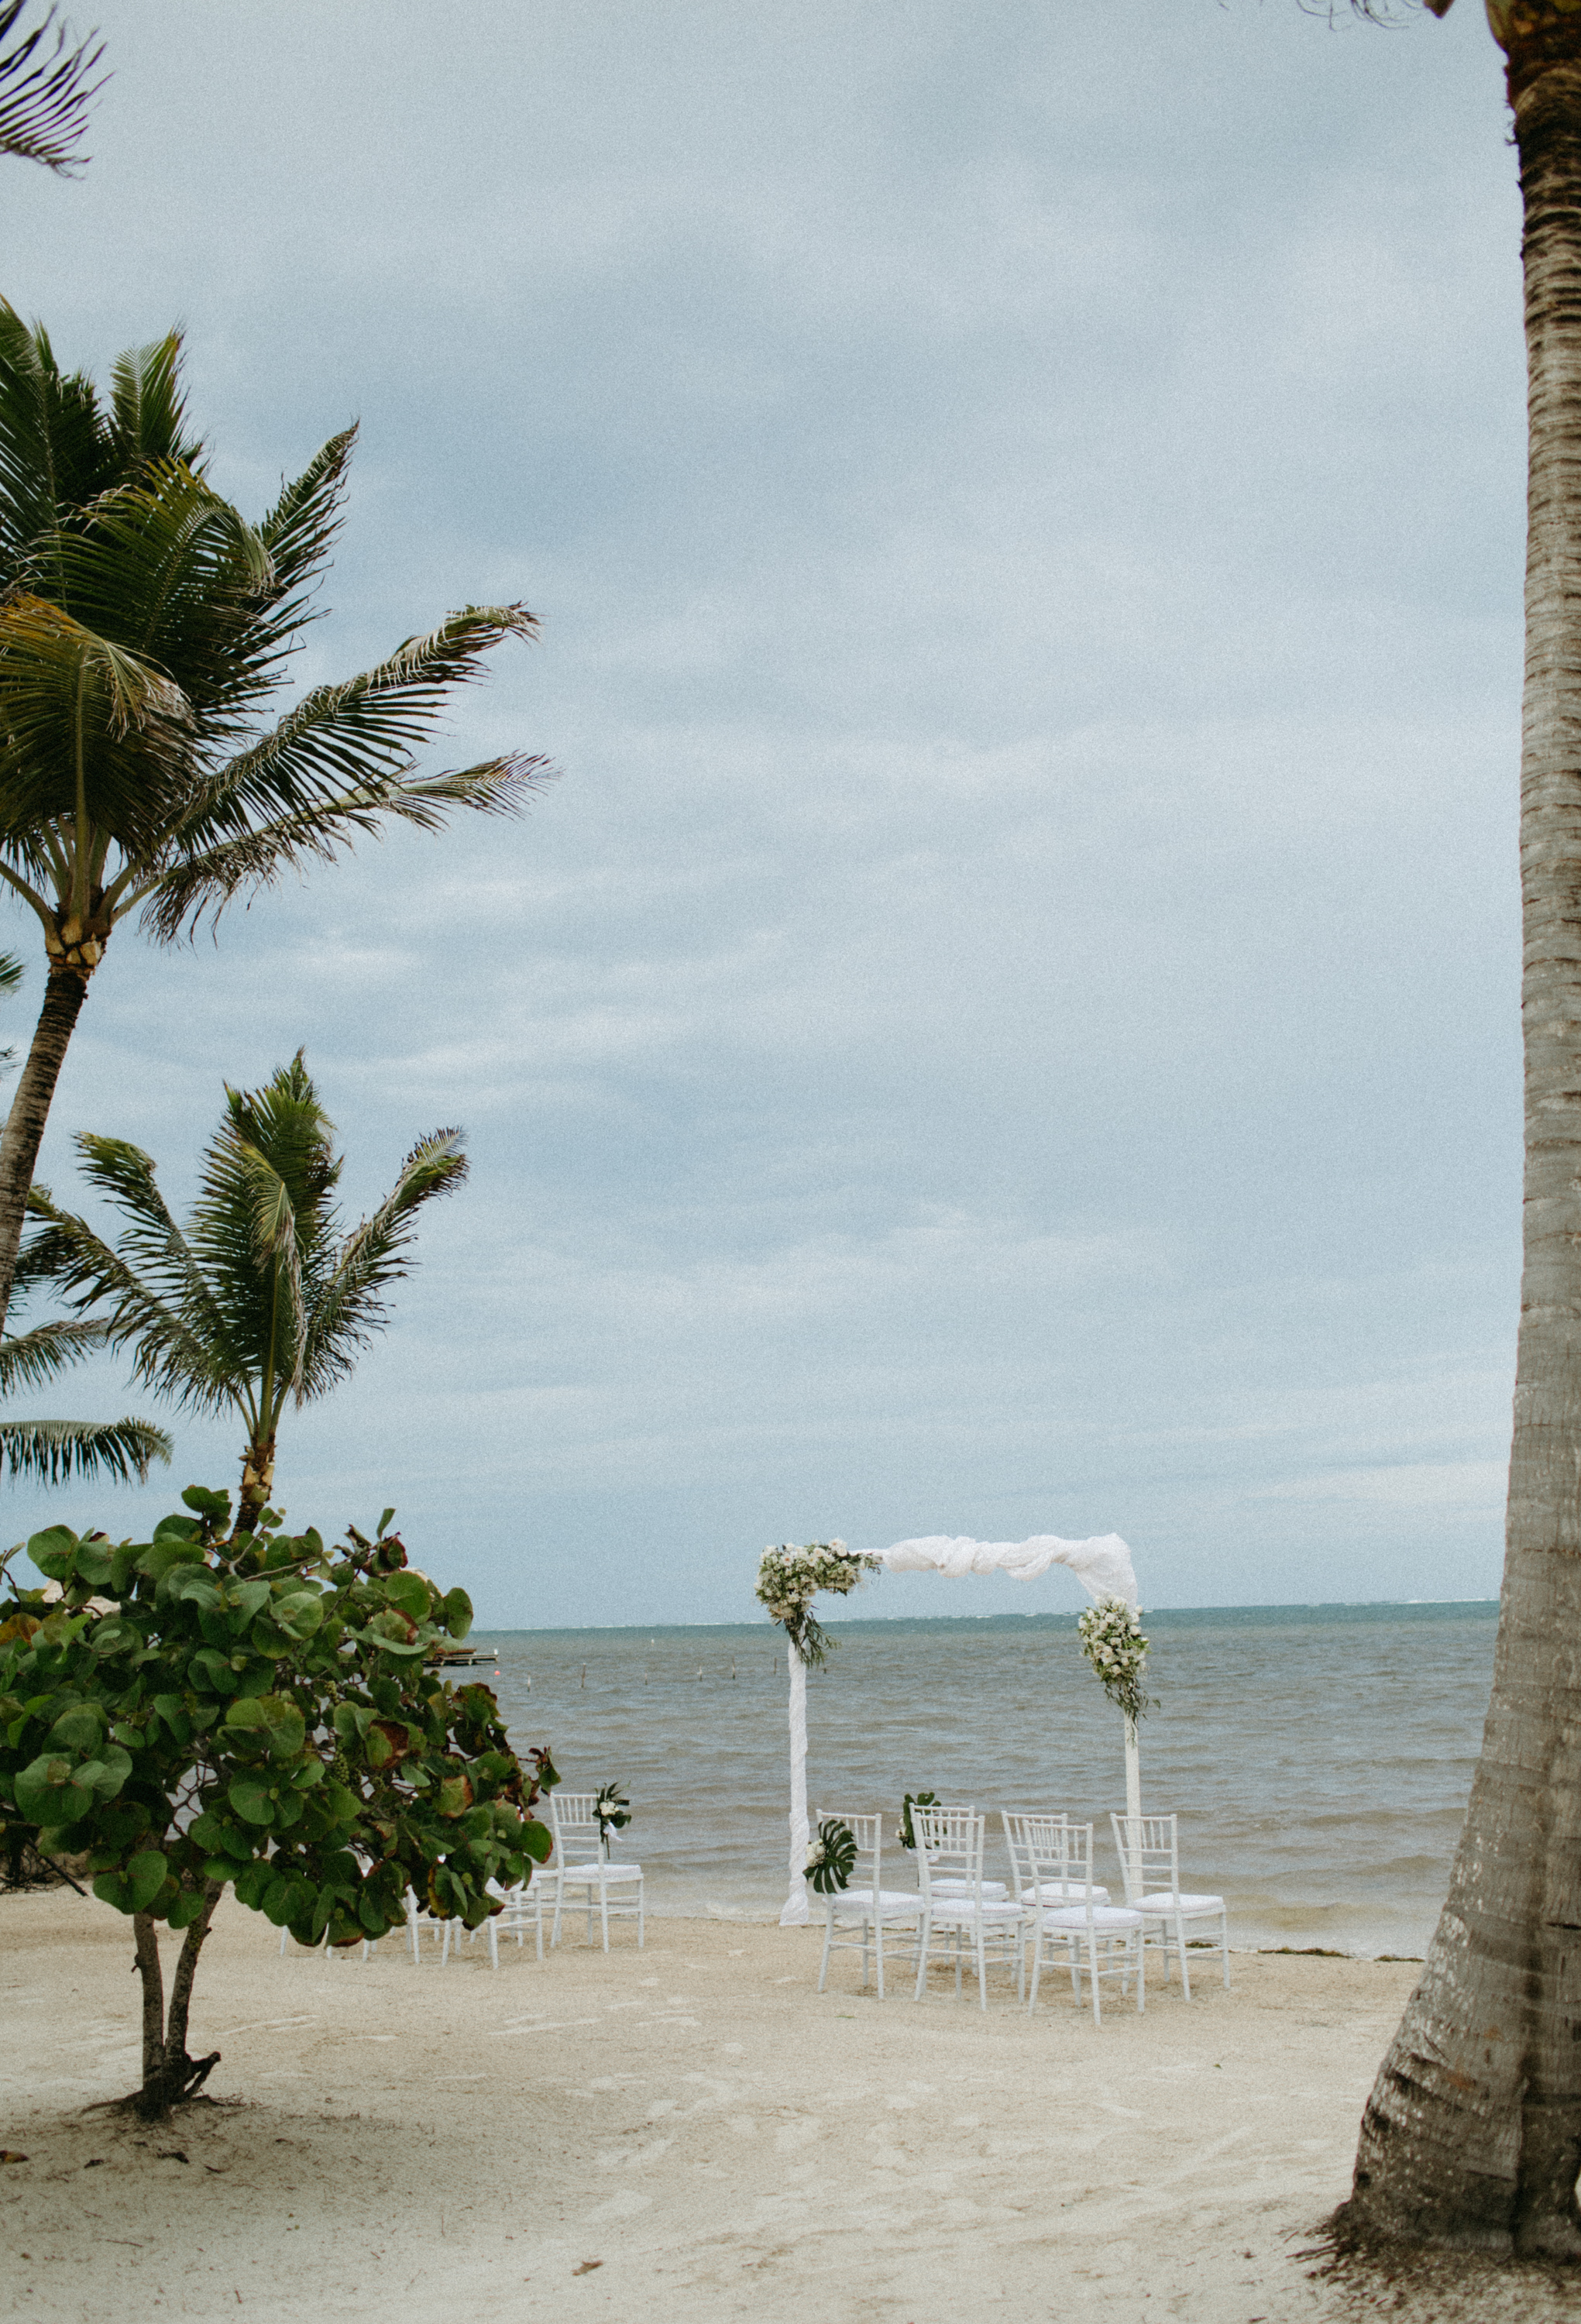 san-pescador-belize-wedding-christinemariephoto-j-k-74.jpg